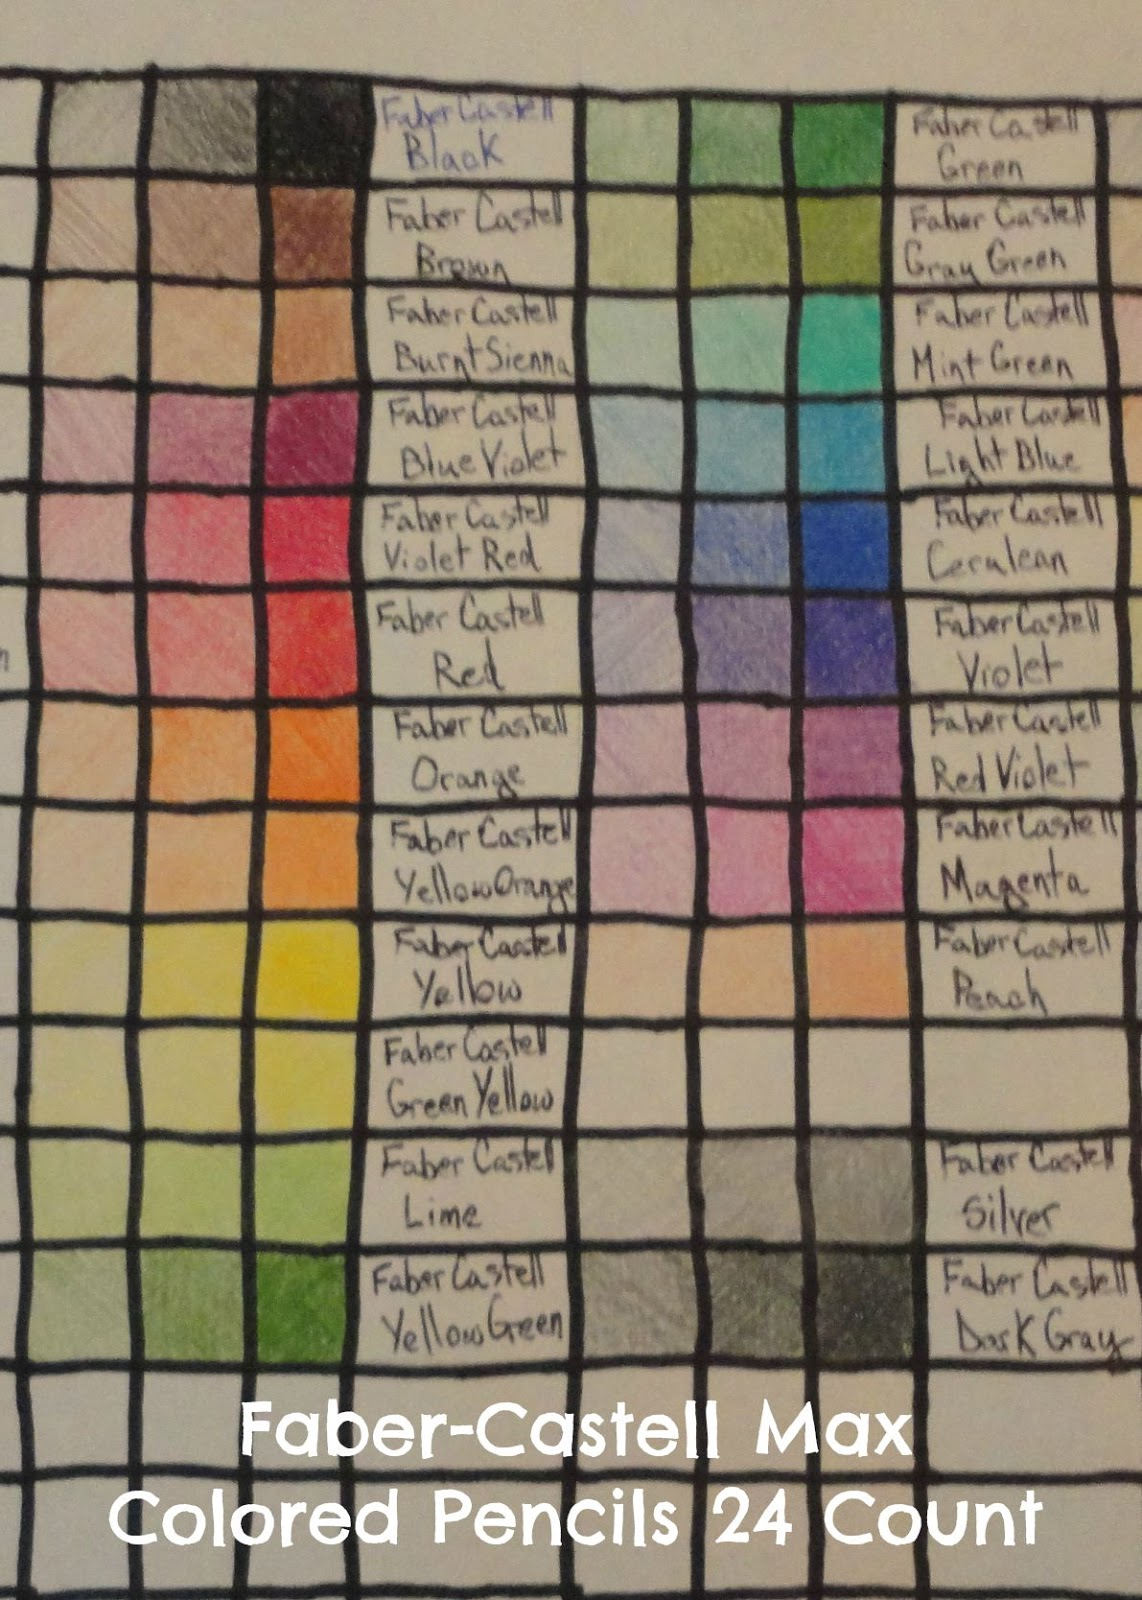 Victorian soul book critiques color me happy an unofficial guide color variety 4 easy to use did i have to press hard 2 colors true to pencil color 4 sharpens well 2 long lasting 4 nvjuhfo Image collections